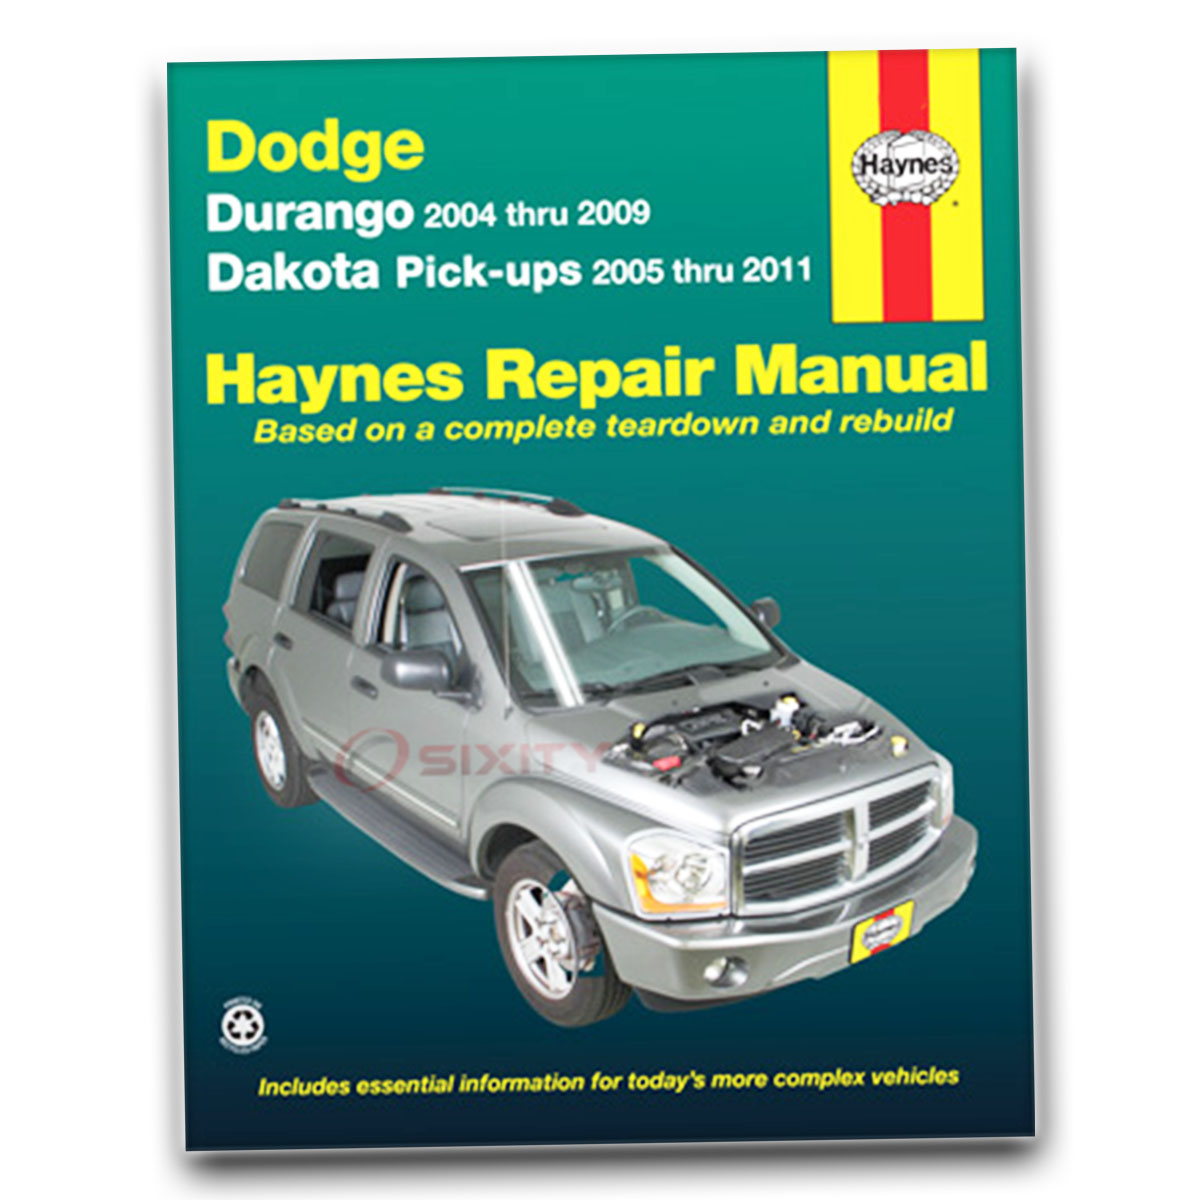 Dodge Durango Haynes Repair Manual Sxt Limited Adventurer St Hybrid Slt Shop Rj